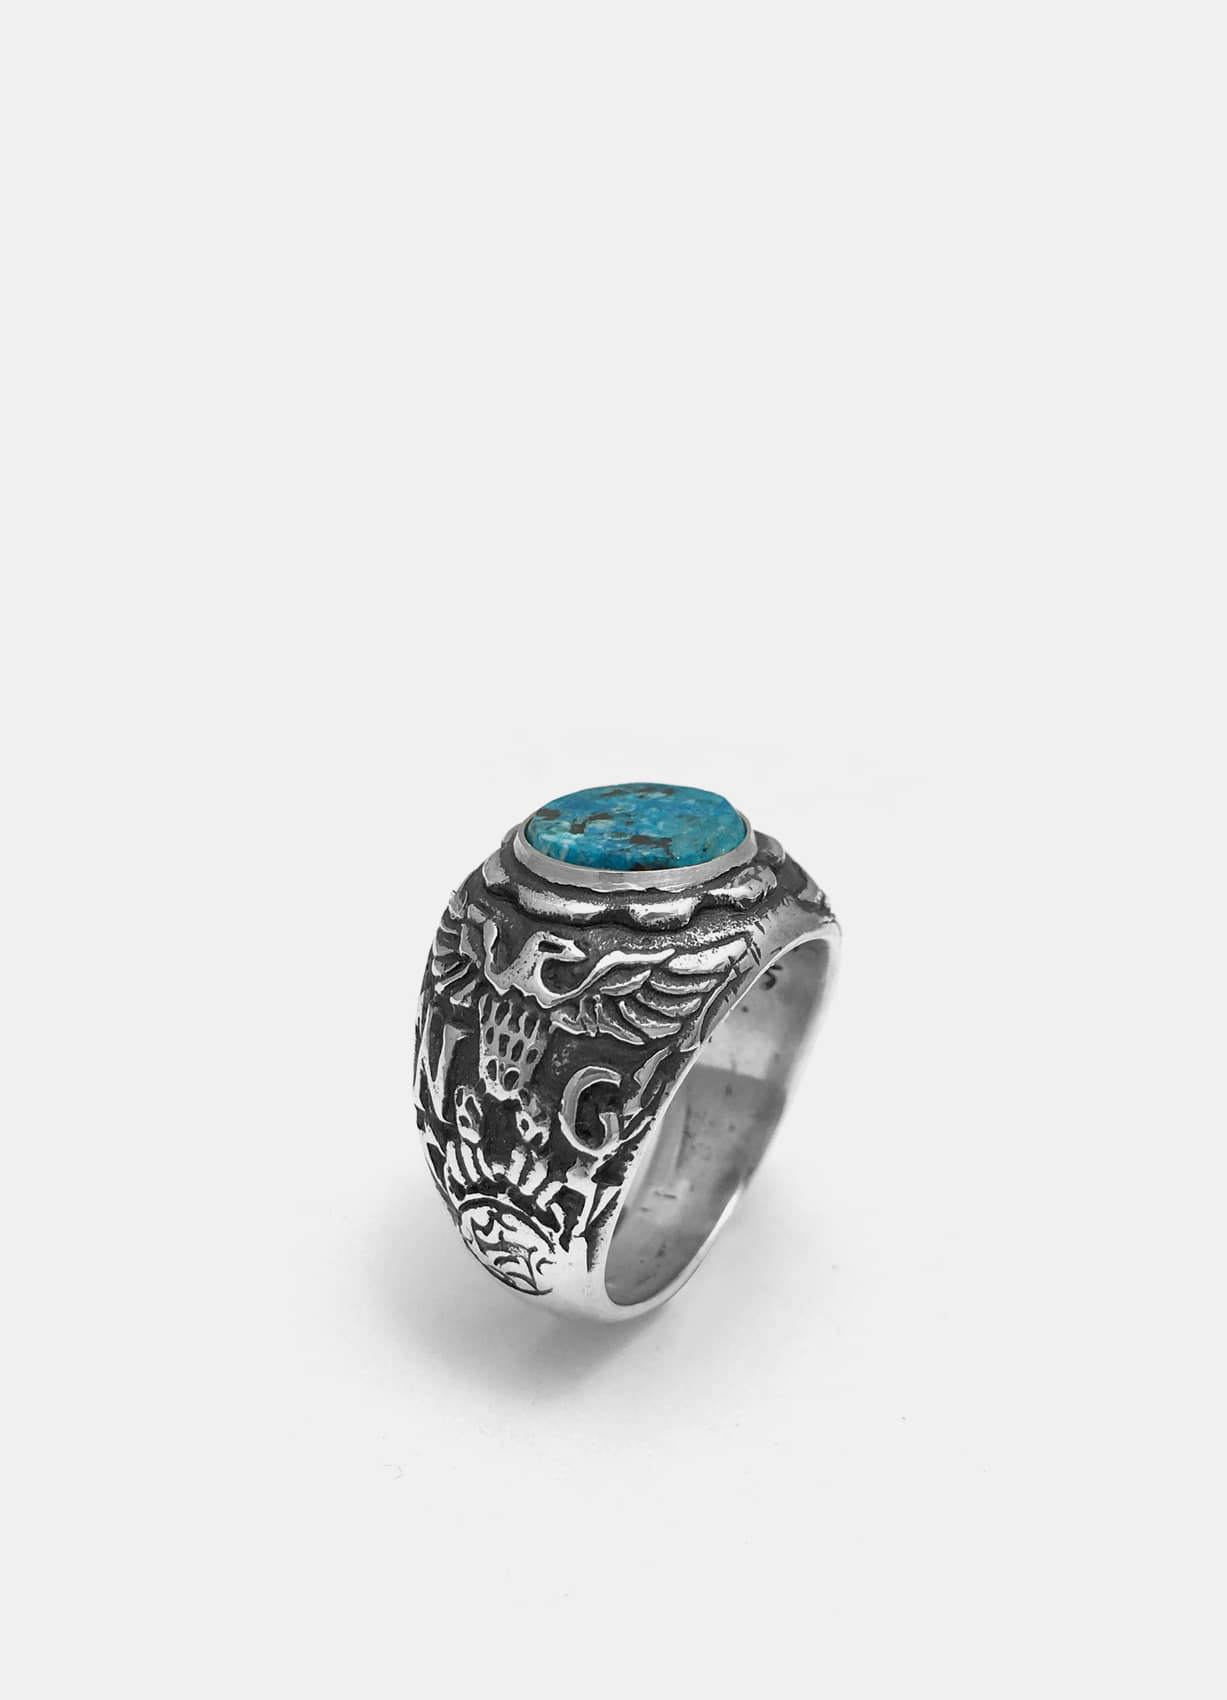 Eagle Crest Silver Ring w/Turquoise